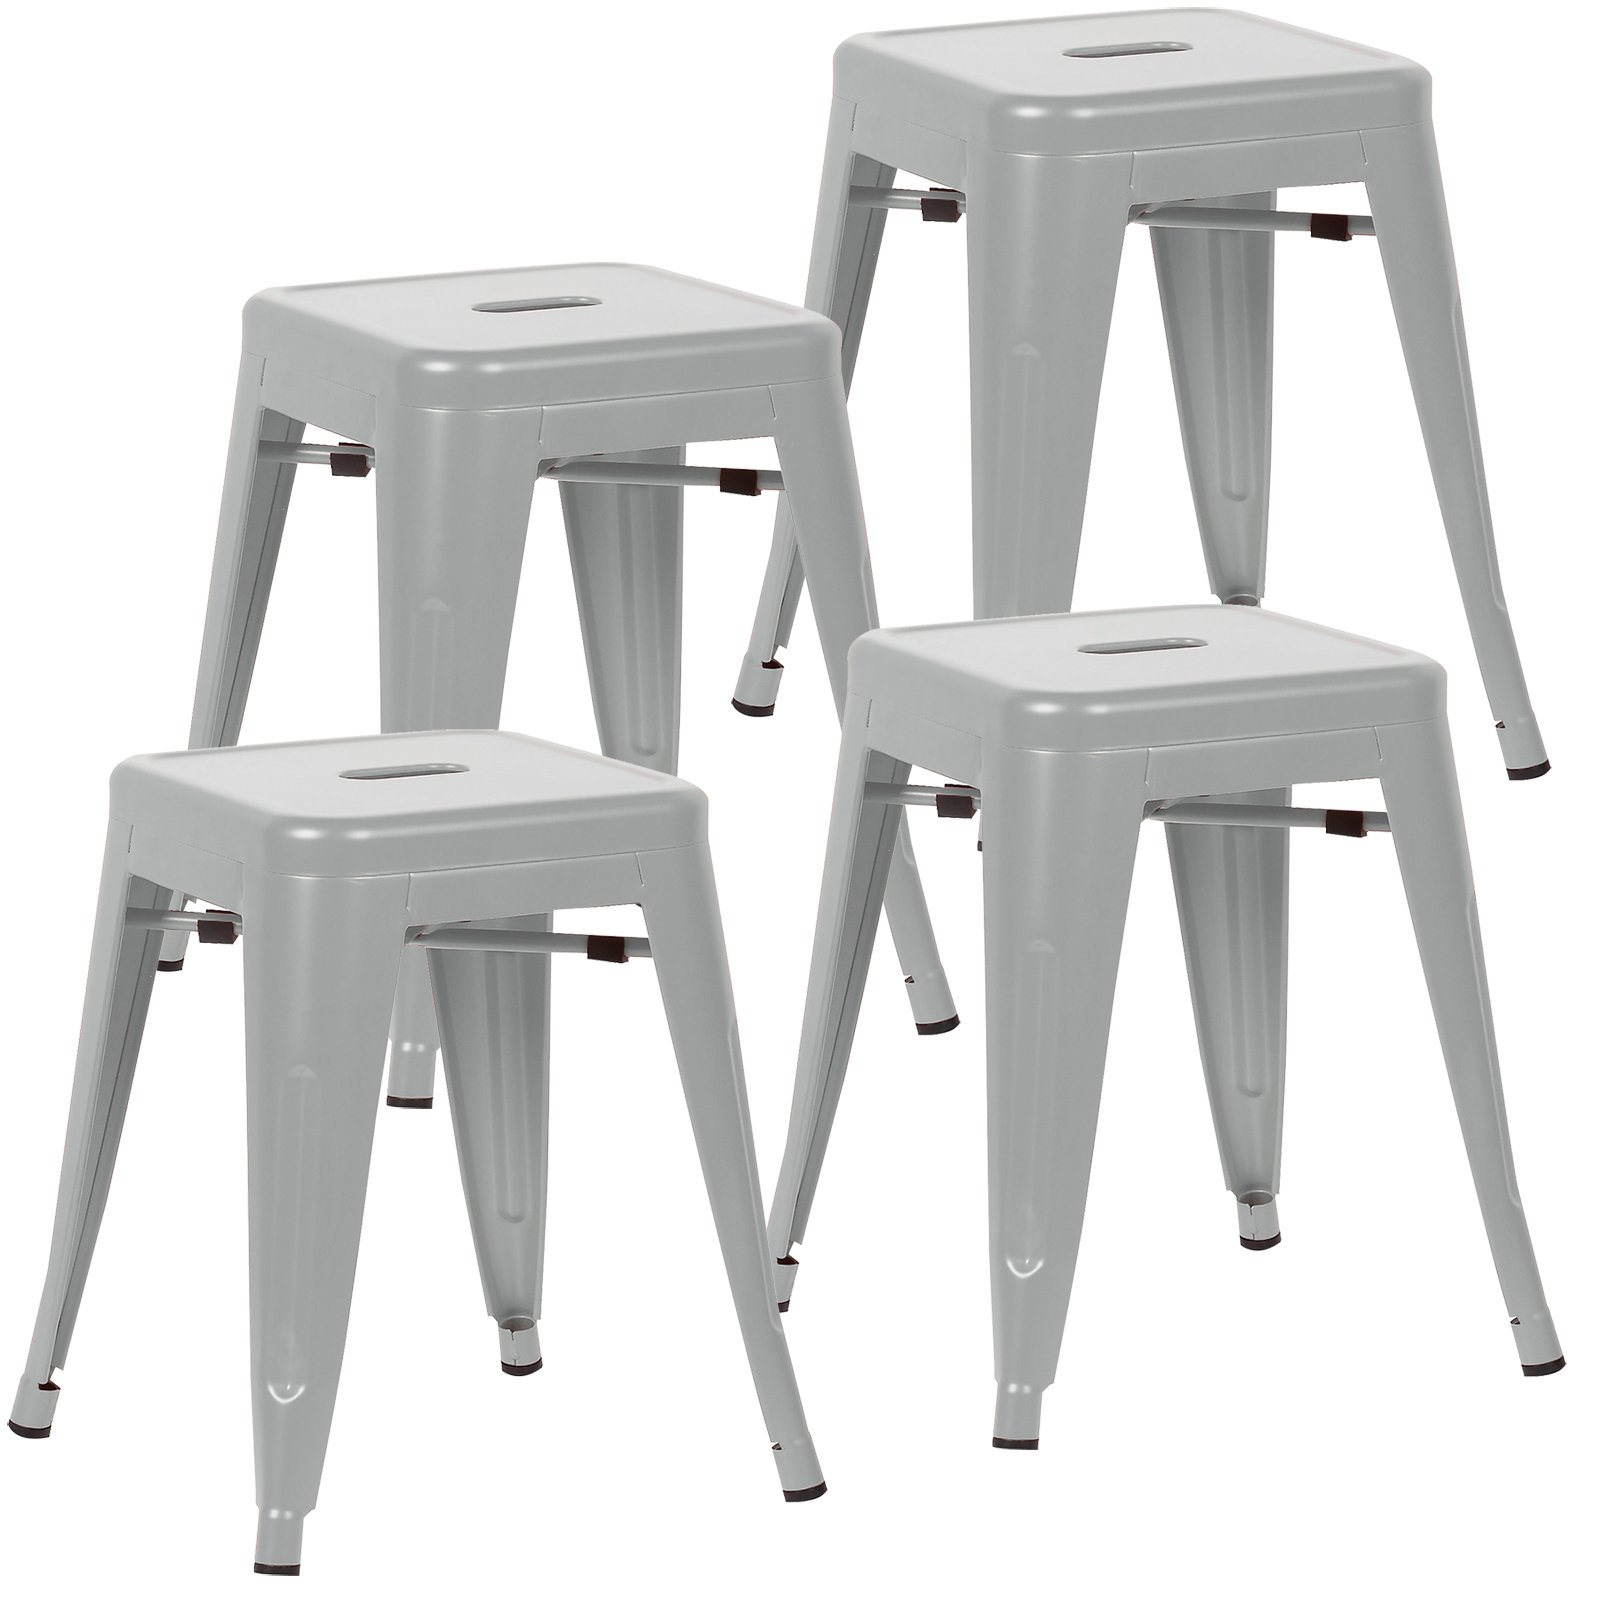 Poly and Bark Trattoria 18'' Stool in Grey (Set of 4)